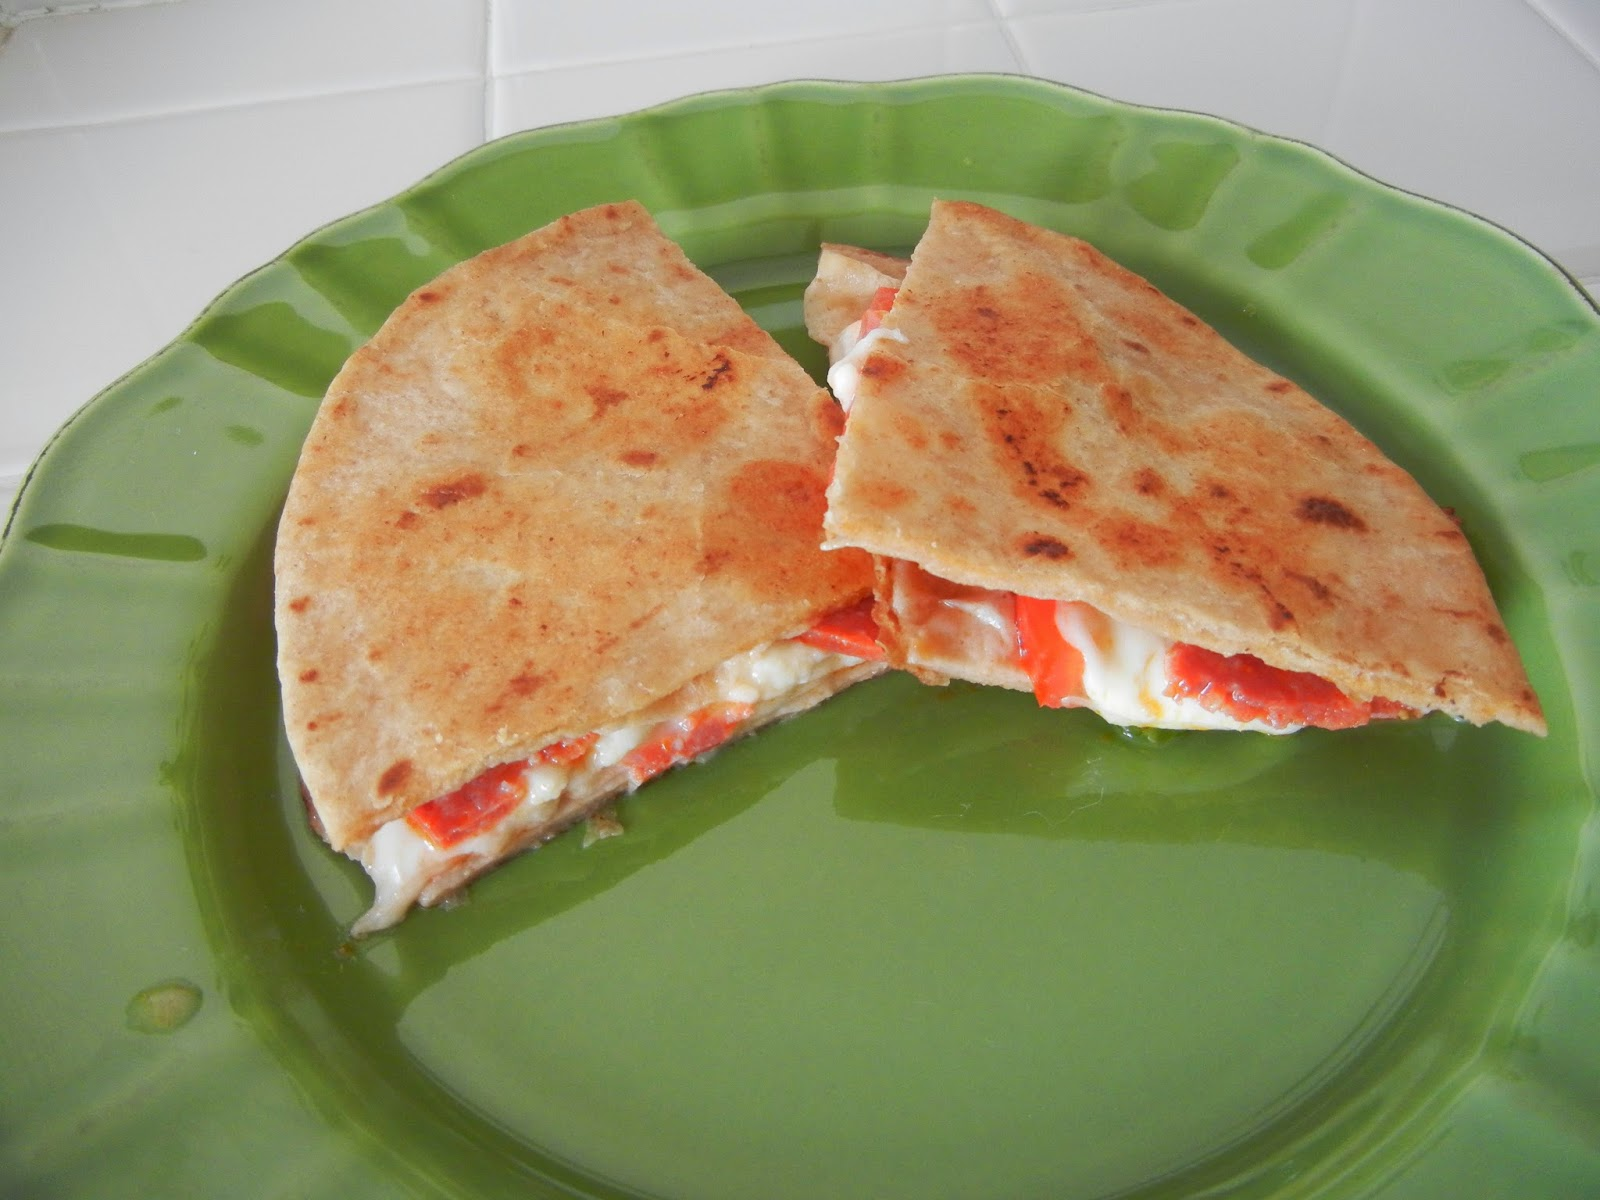 Pizza+Quesadilla Weight Loss Recipes Post Weight Loss Surgery Menus: A day in my pouch